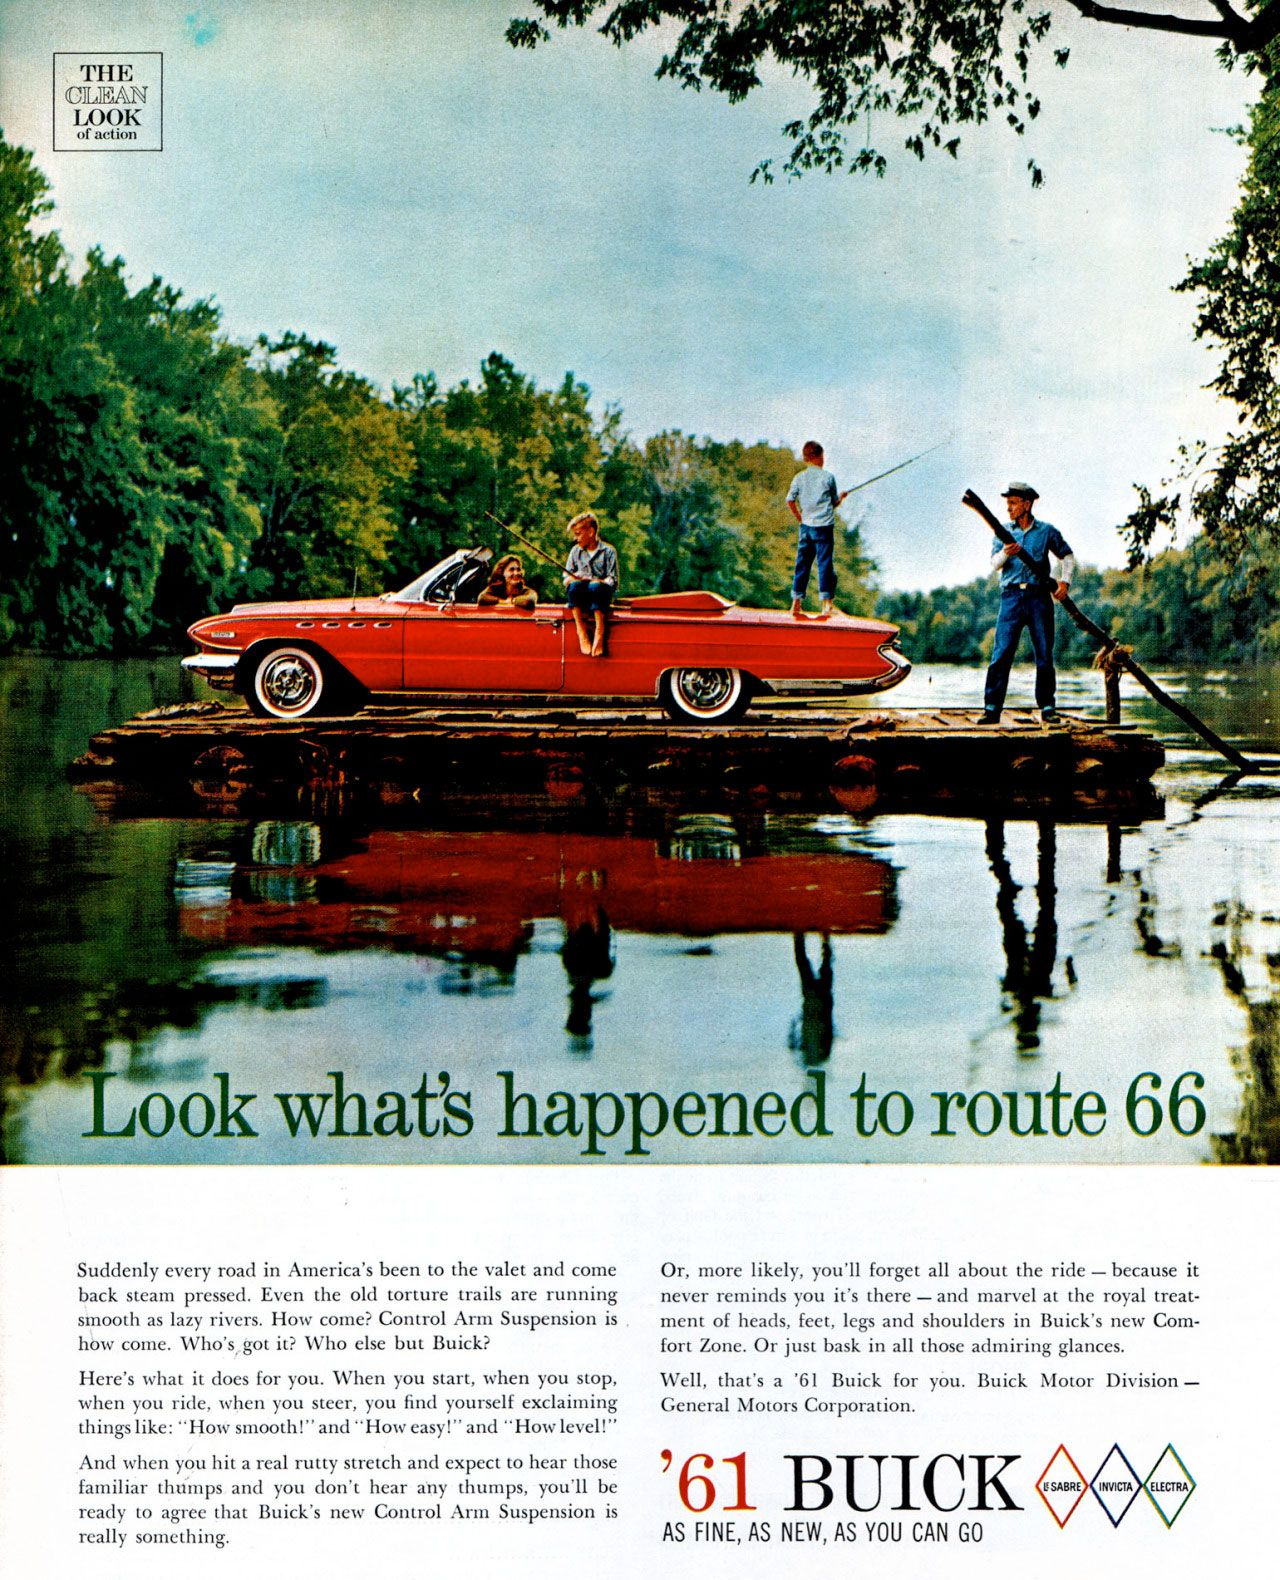 Look what's happened to Route 66. The 1961 Buick. As fine, as new, as you can go.